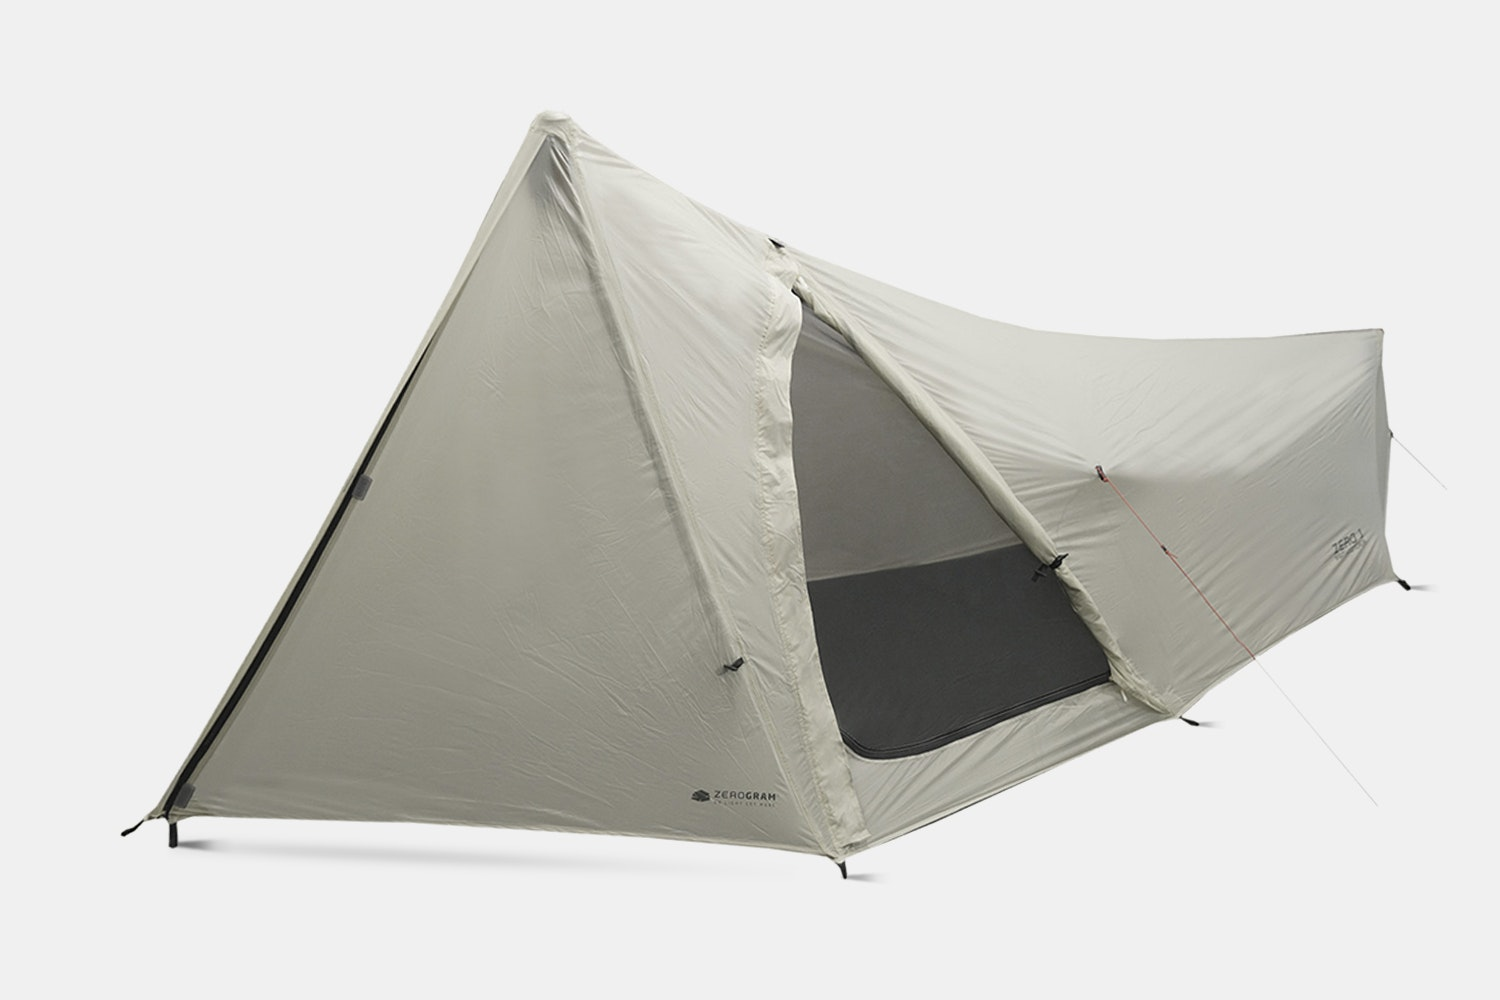 Zerogram ZERO 1 Pathfinder Tent & Zerogram ZERO 1 Pathfinder Tent | Price u0026 Reviews | Massdrop